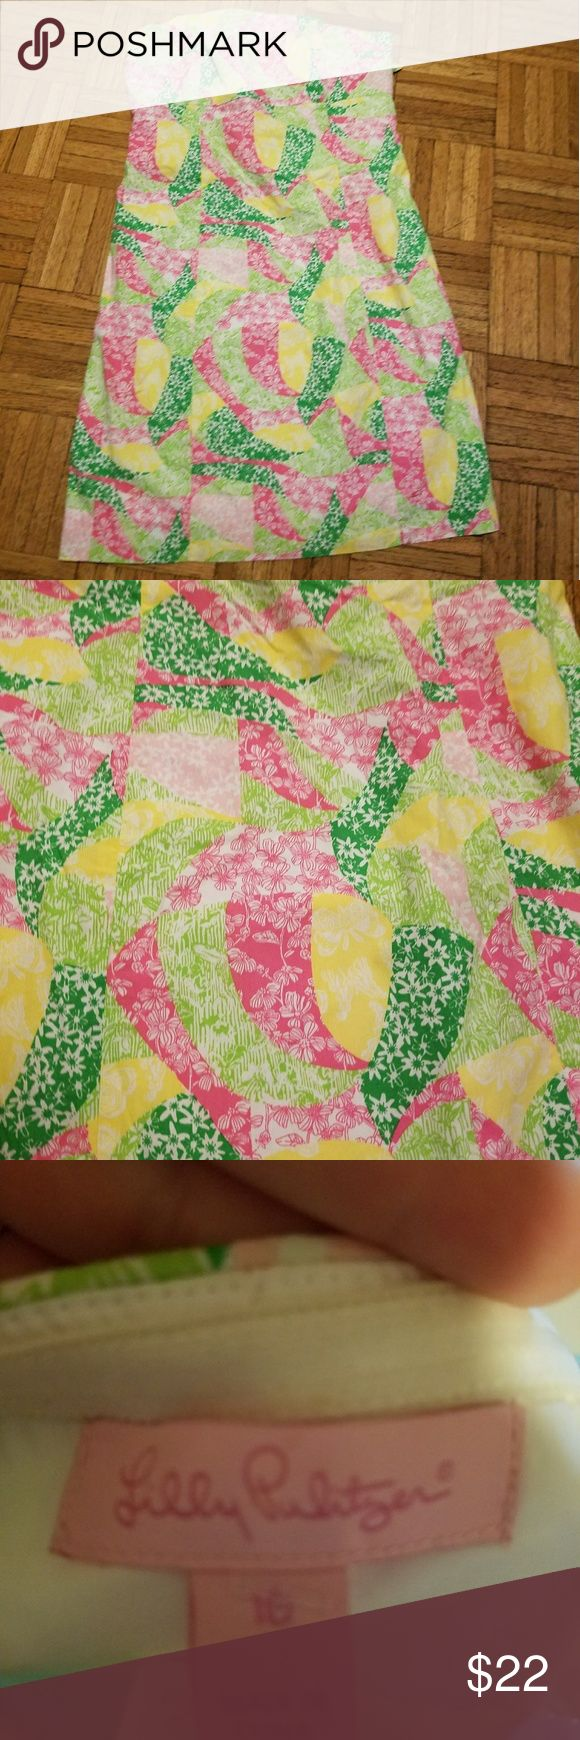 Lilly Pulitzer strapless sundress green, pink, yellow patterned Lilly Pulitzer sundress. tie back closure. size 10. great condition! Lilly Pulitzer Dresses Strapless